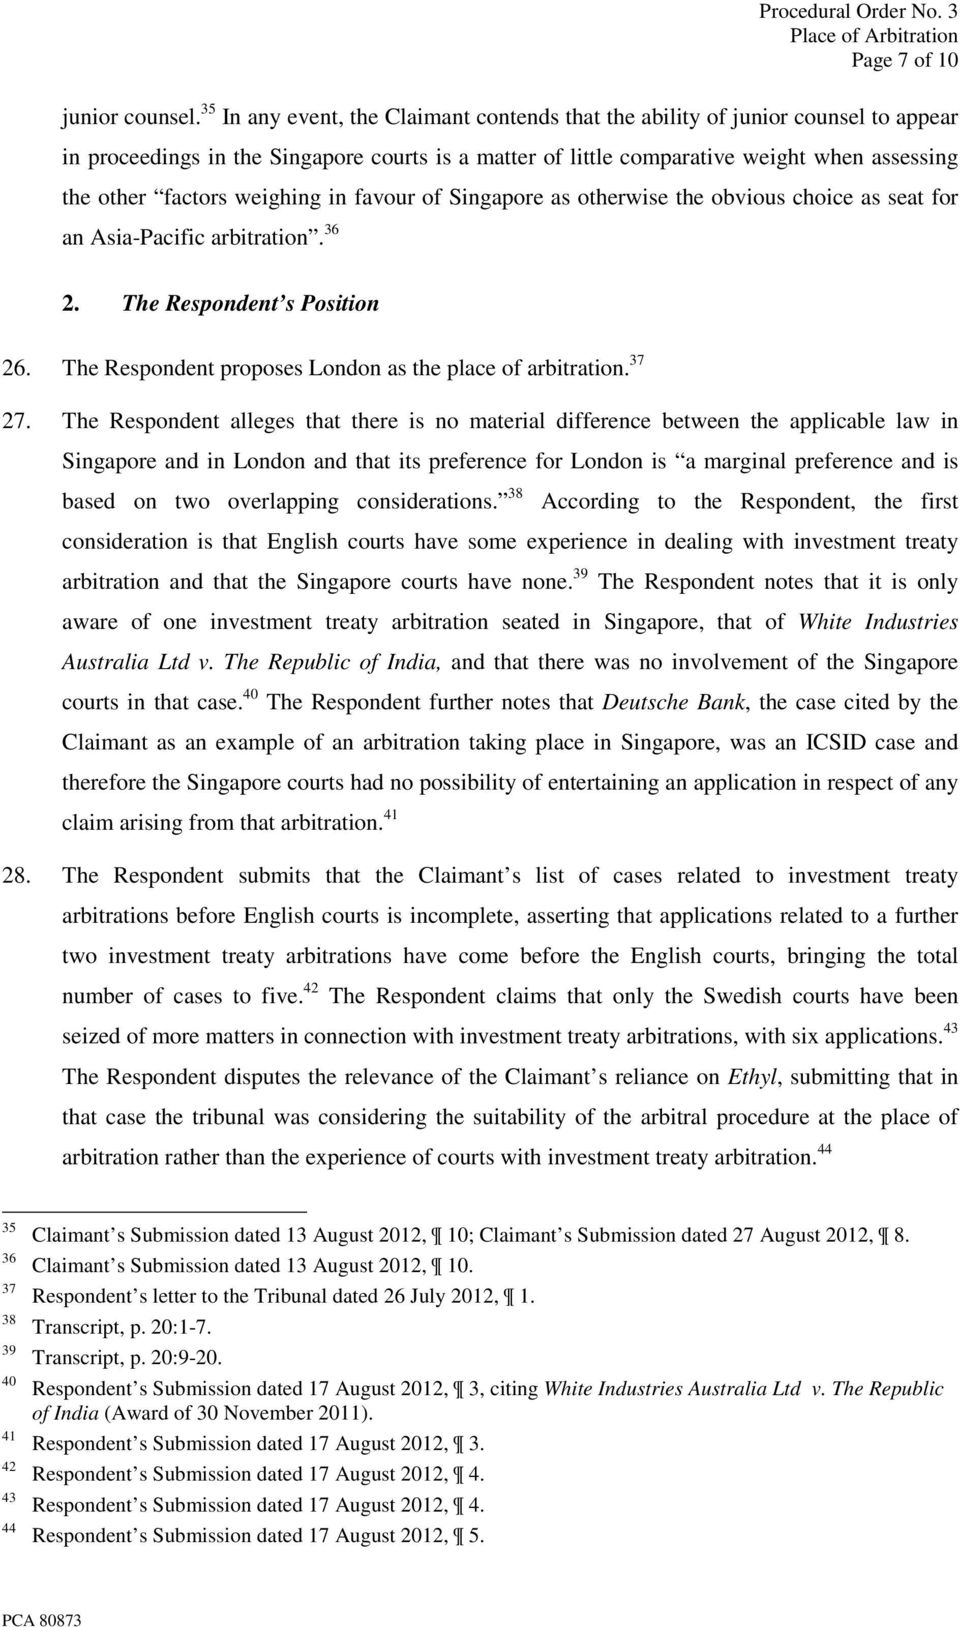 weighing in favour of Singapore as otherwise the obvious choice as seat for an Asia-Pacific arbitration. 36 2. The Respondent s Position 26. The Respondent proposes London as the place of arbitration.